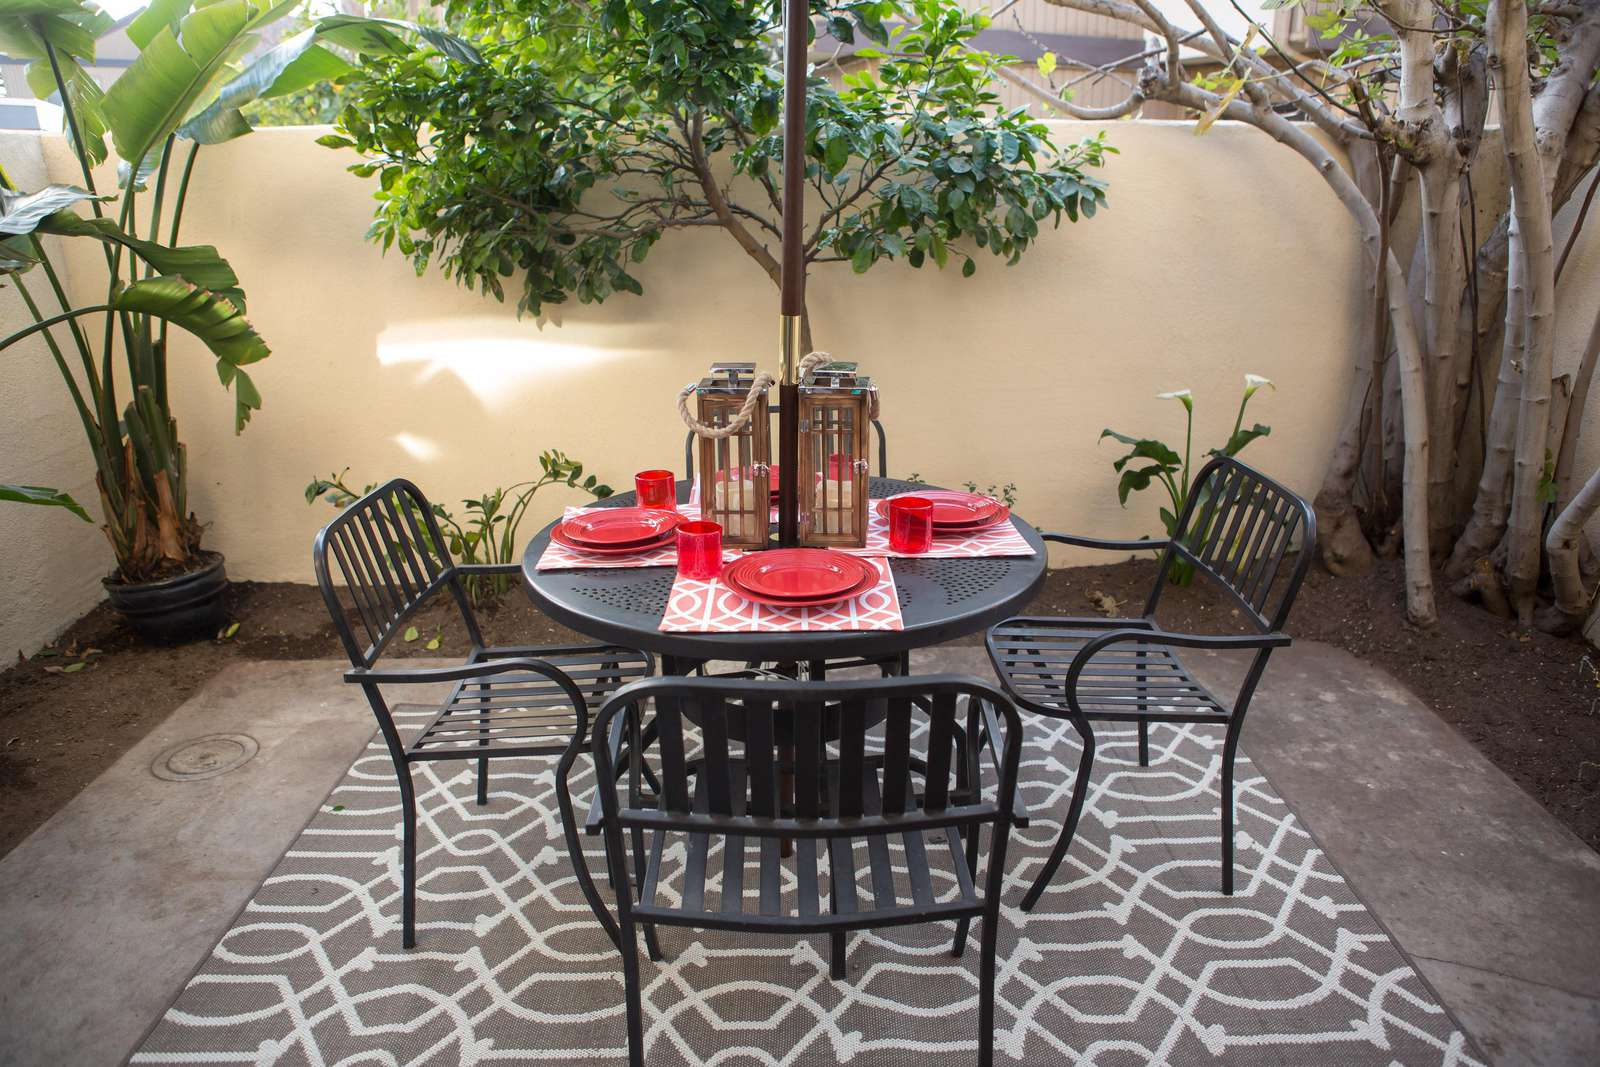 Enjoy the SoCal weather on the patio!